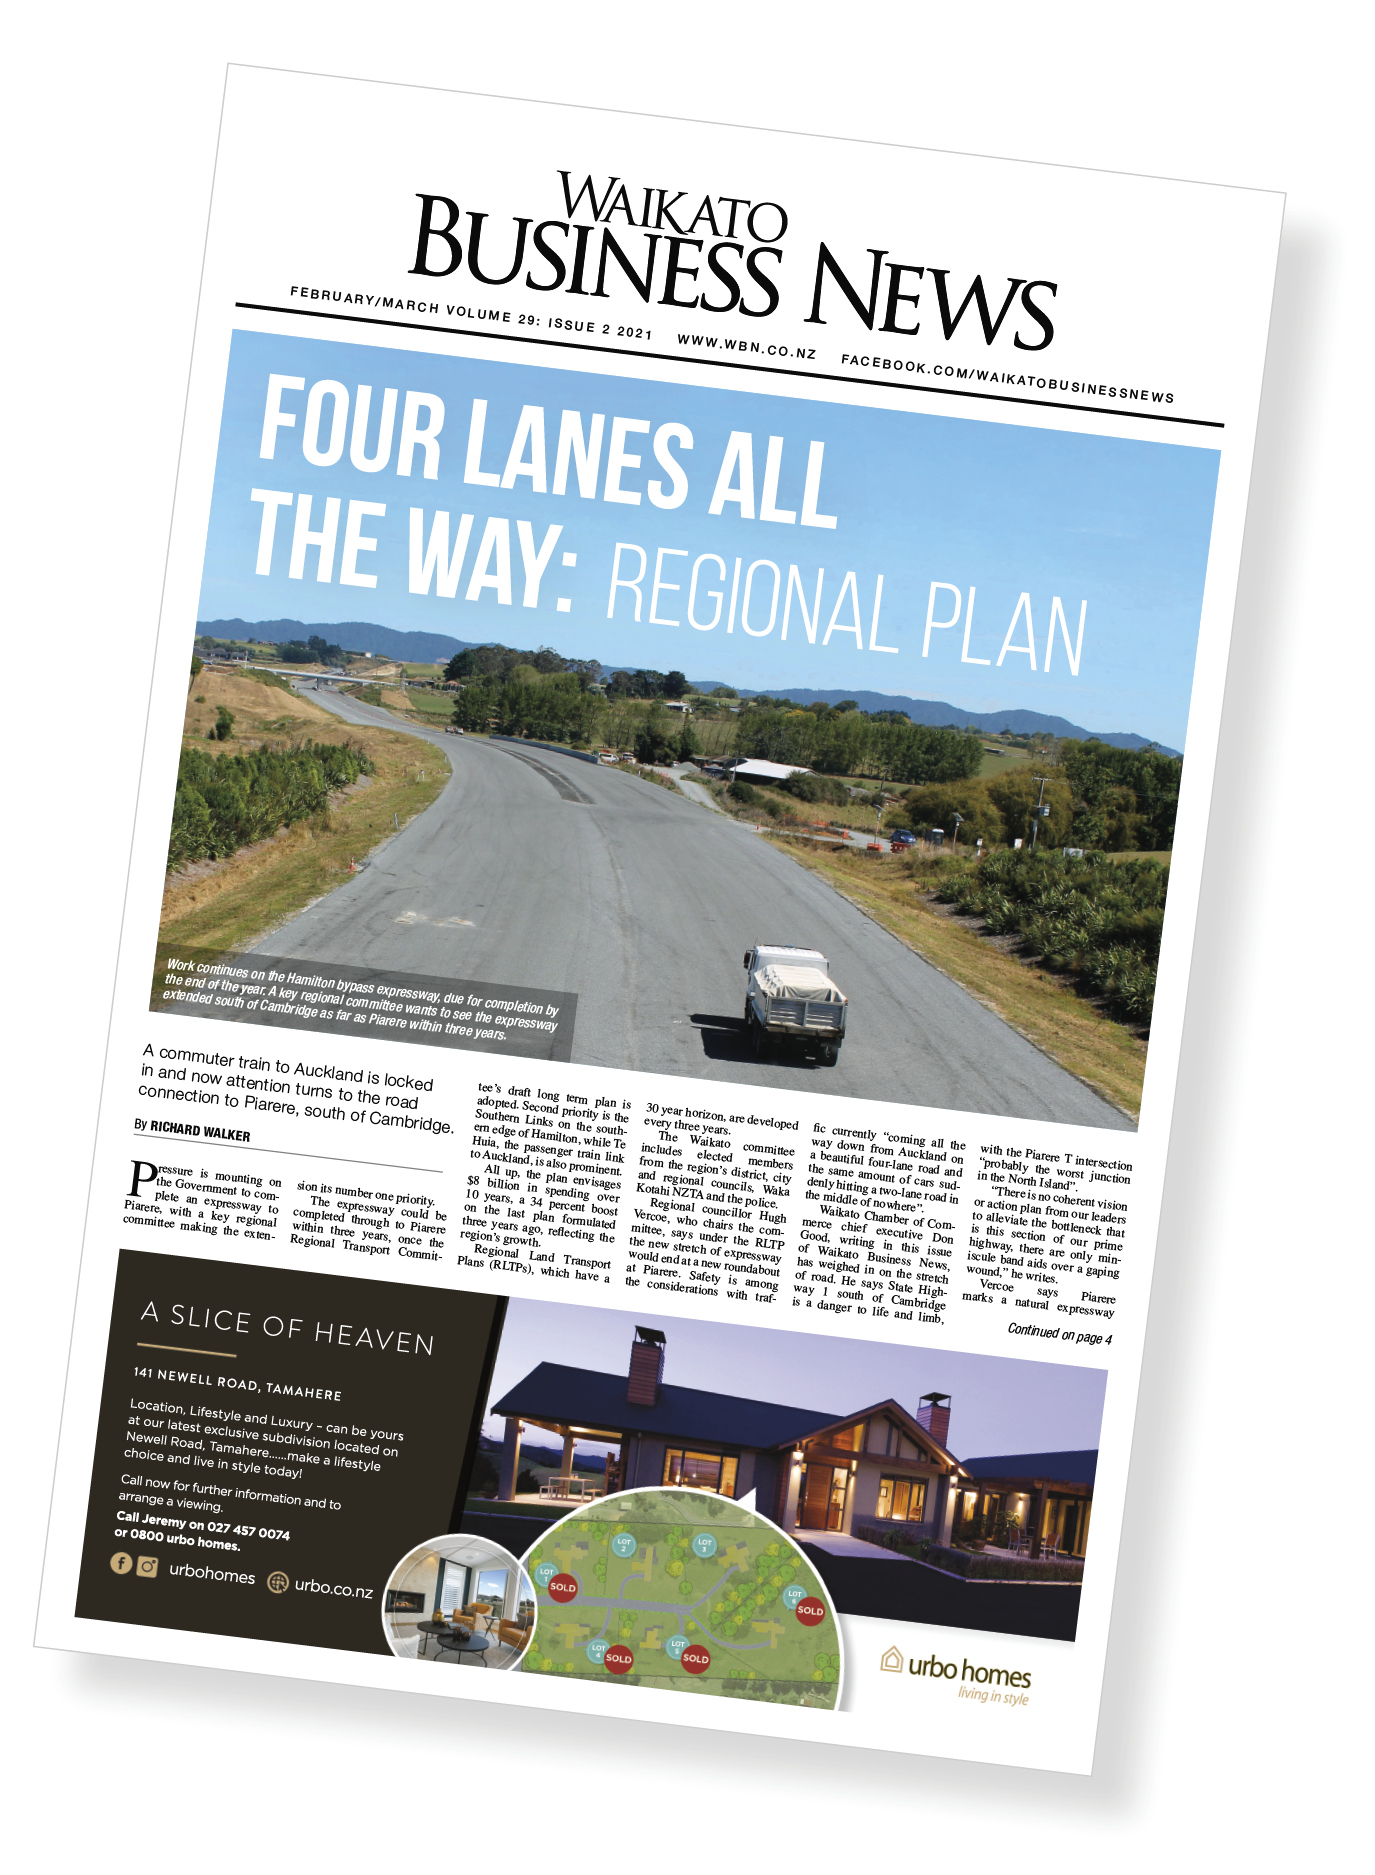 Waikato Business News February/March 2021